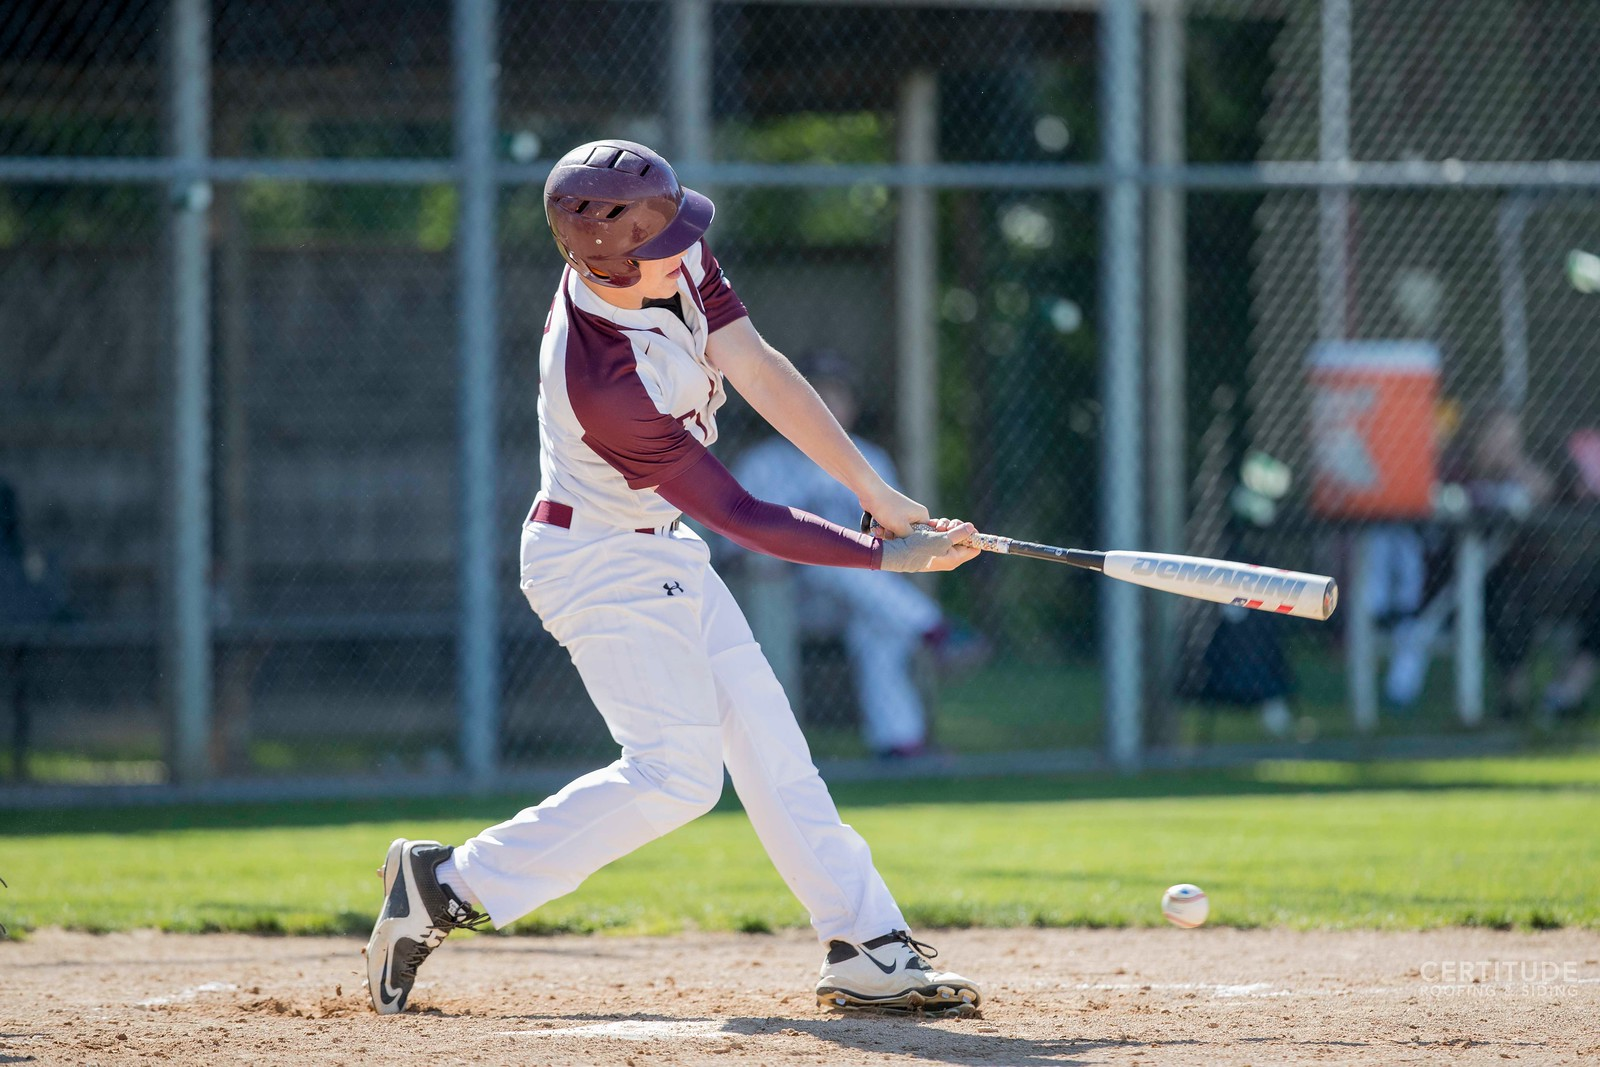 Lower_Merion_BASEBALL_vs_Conestoga-166